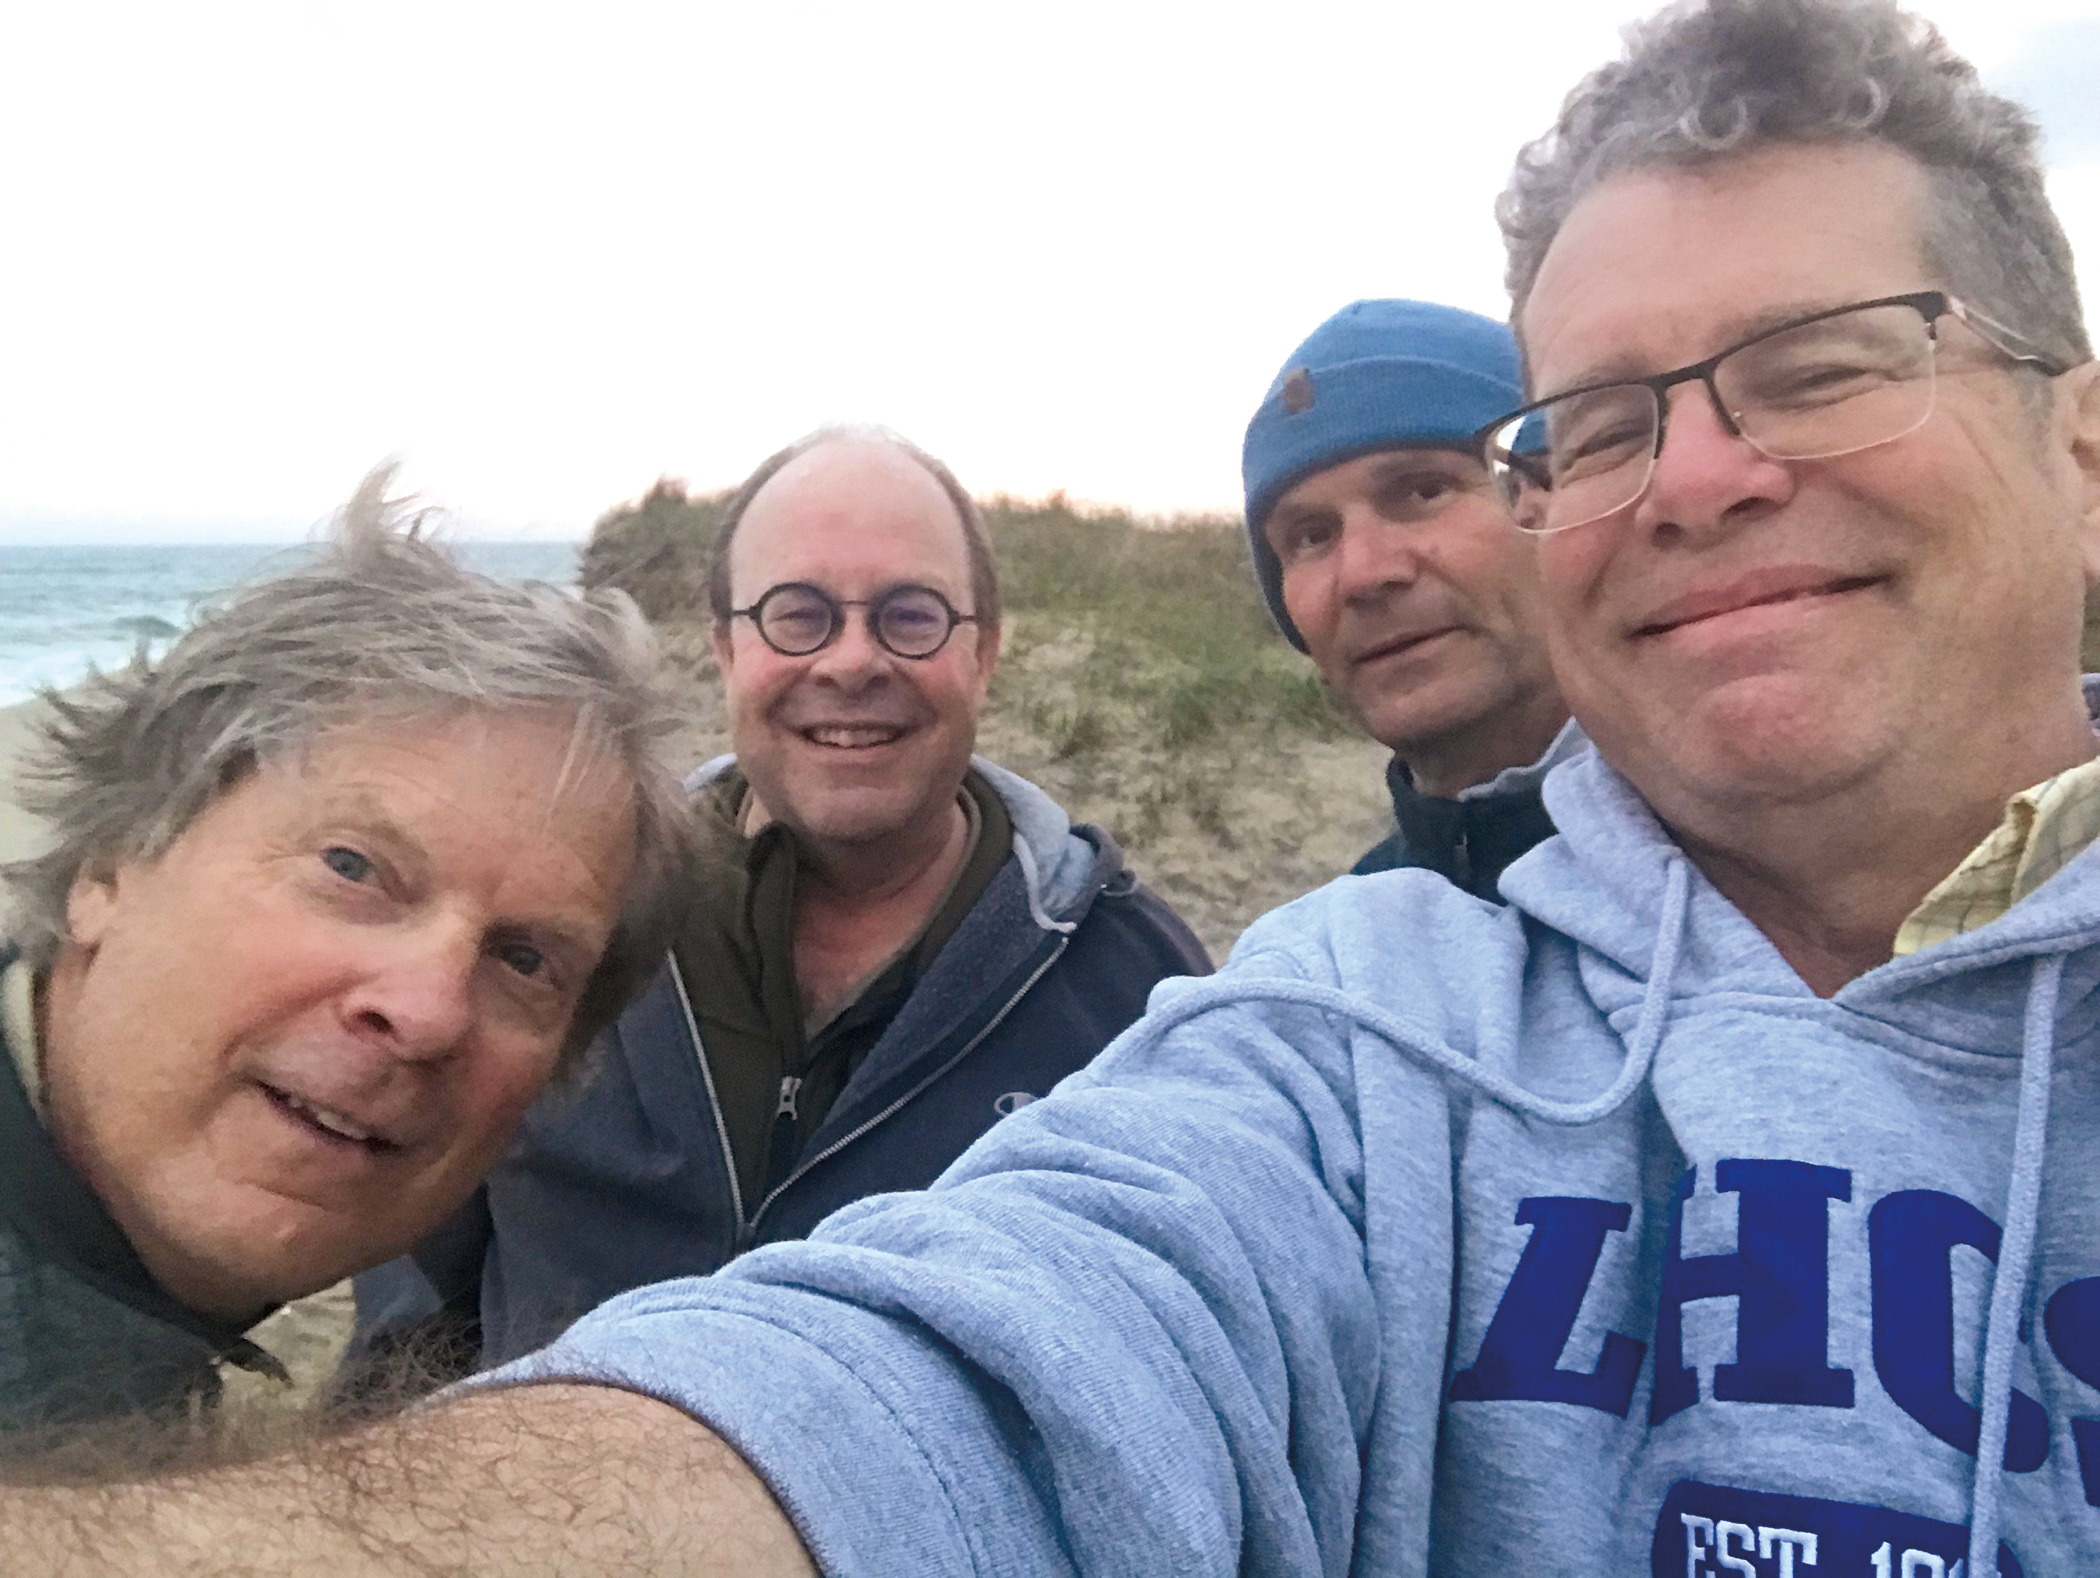 In May, Bill Newlin '75, David Moffat '75, and Gregg Townsend '75 gathered for a weekend at the home of Steve Turner '75.